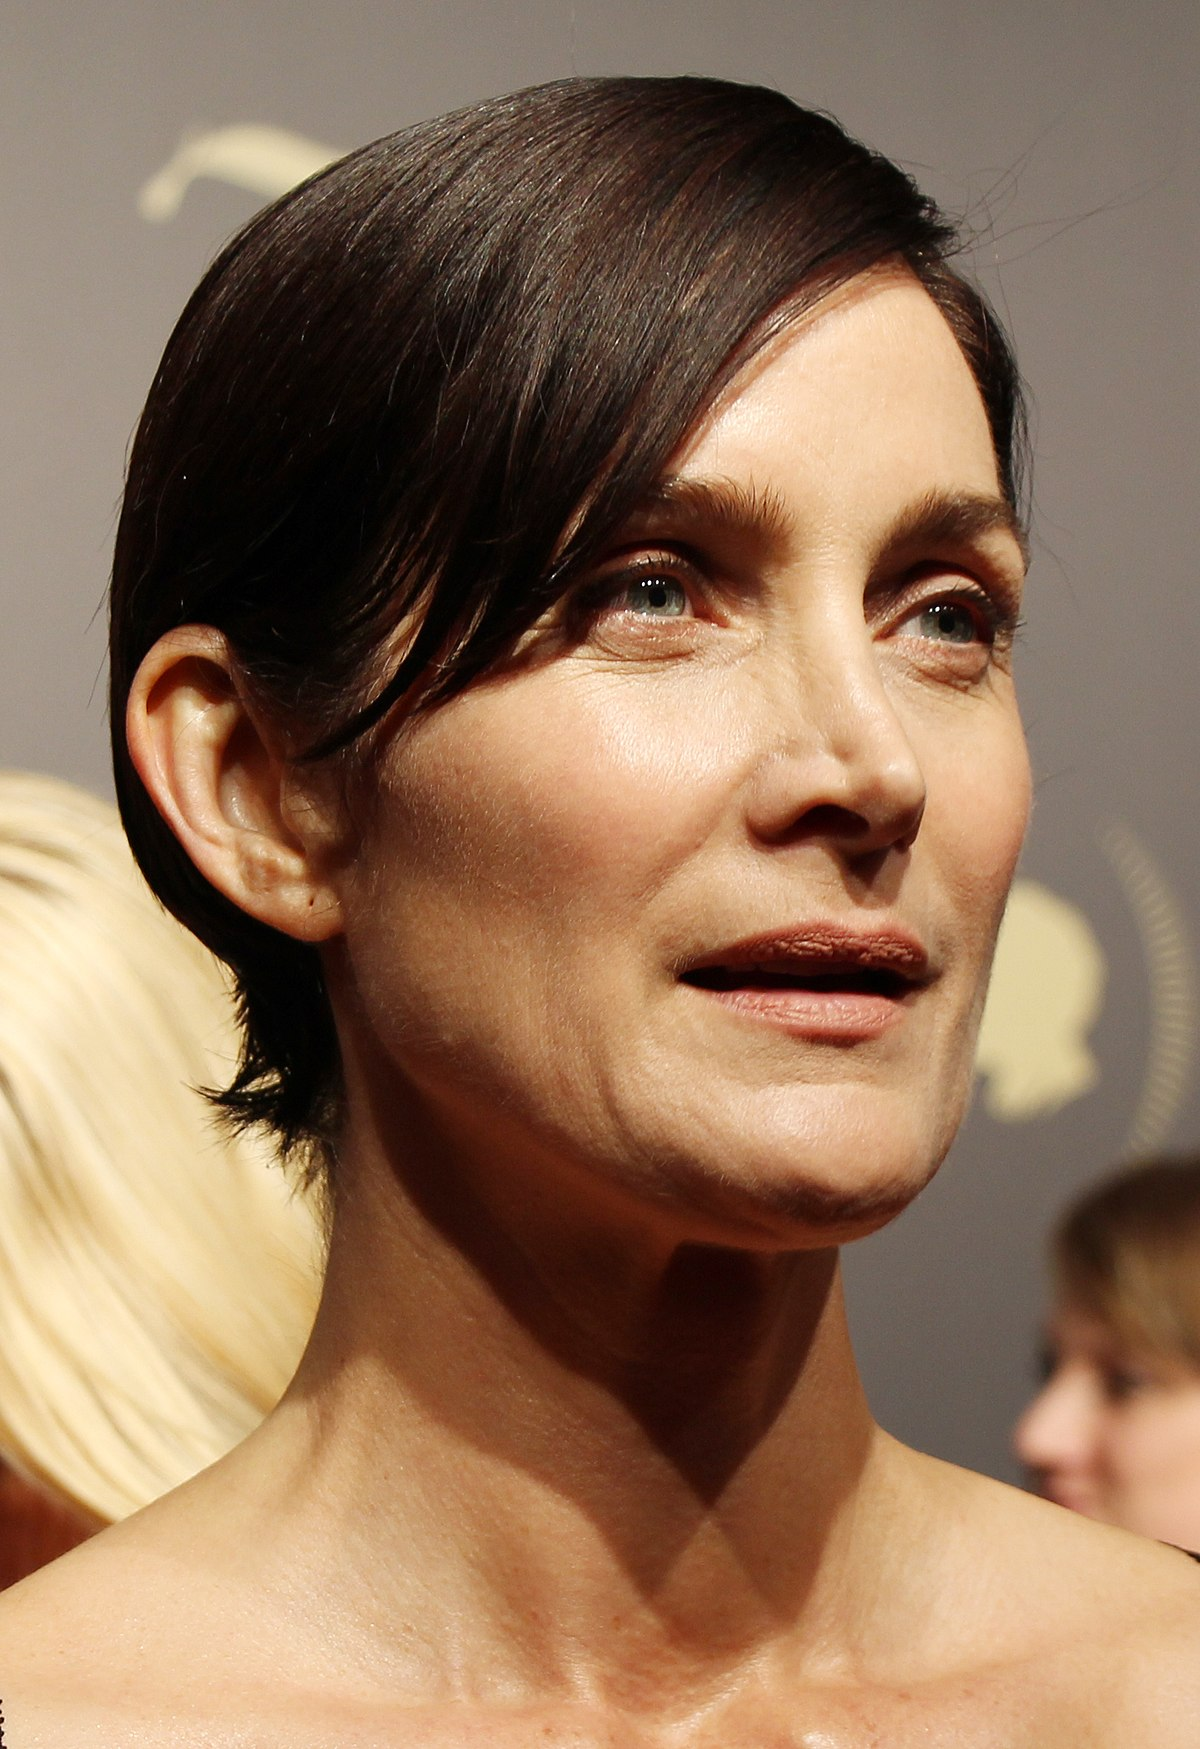 Carrie-Anne Moss Nude Photos 13